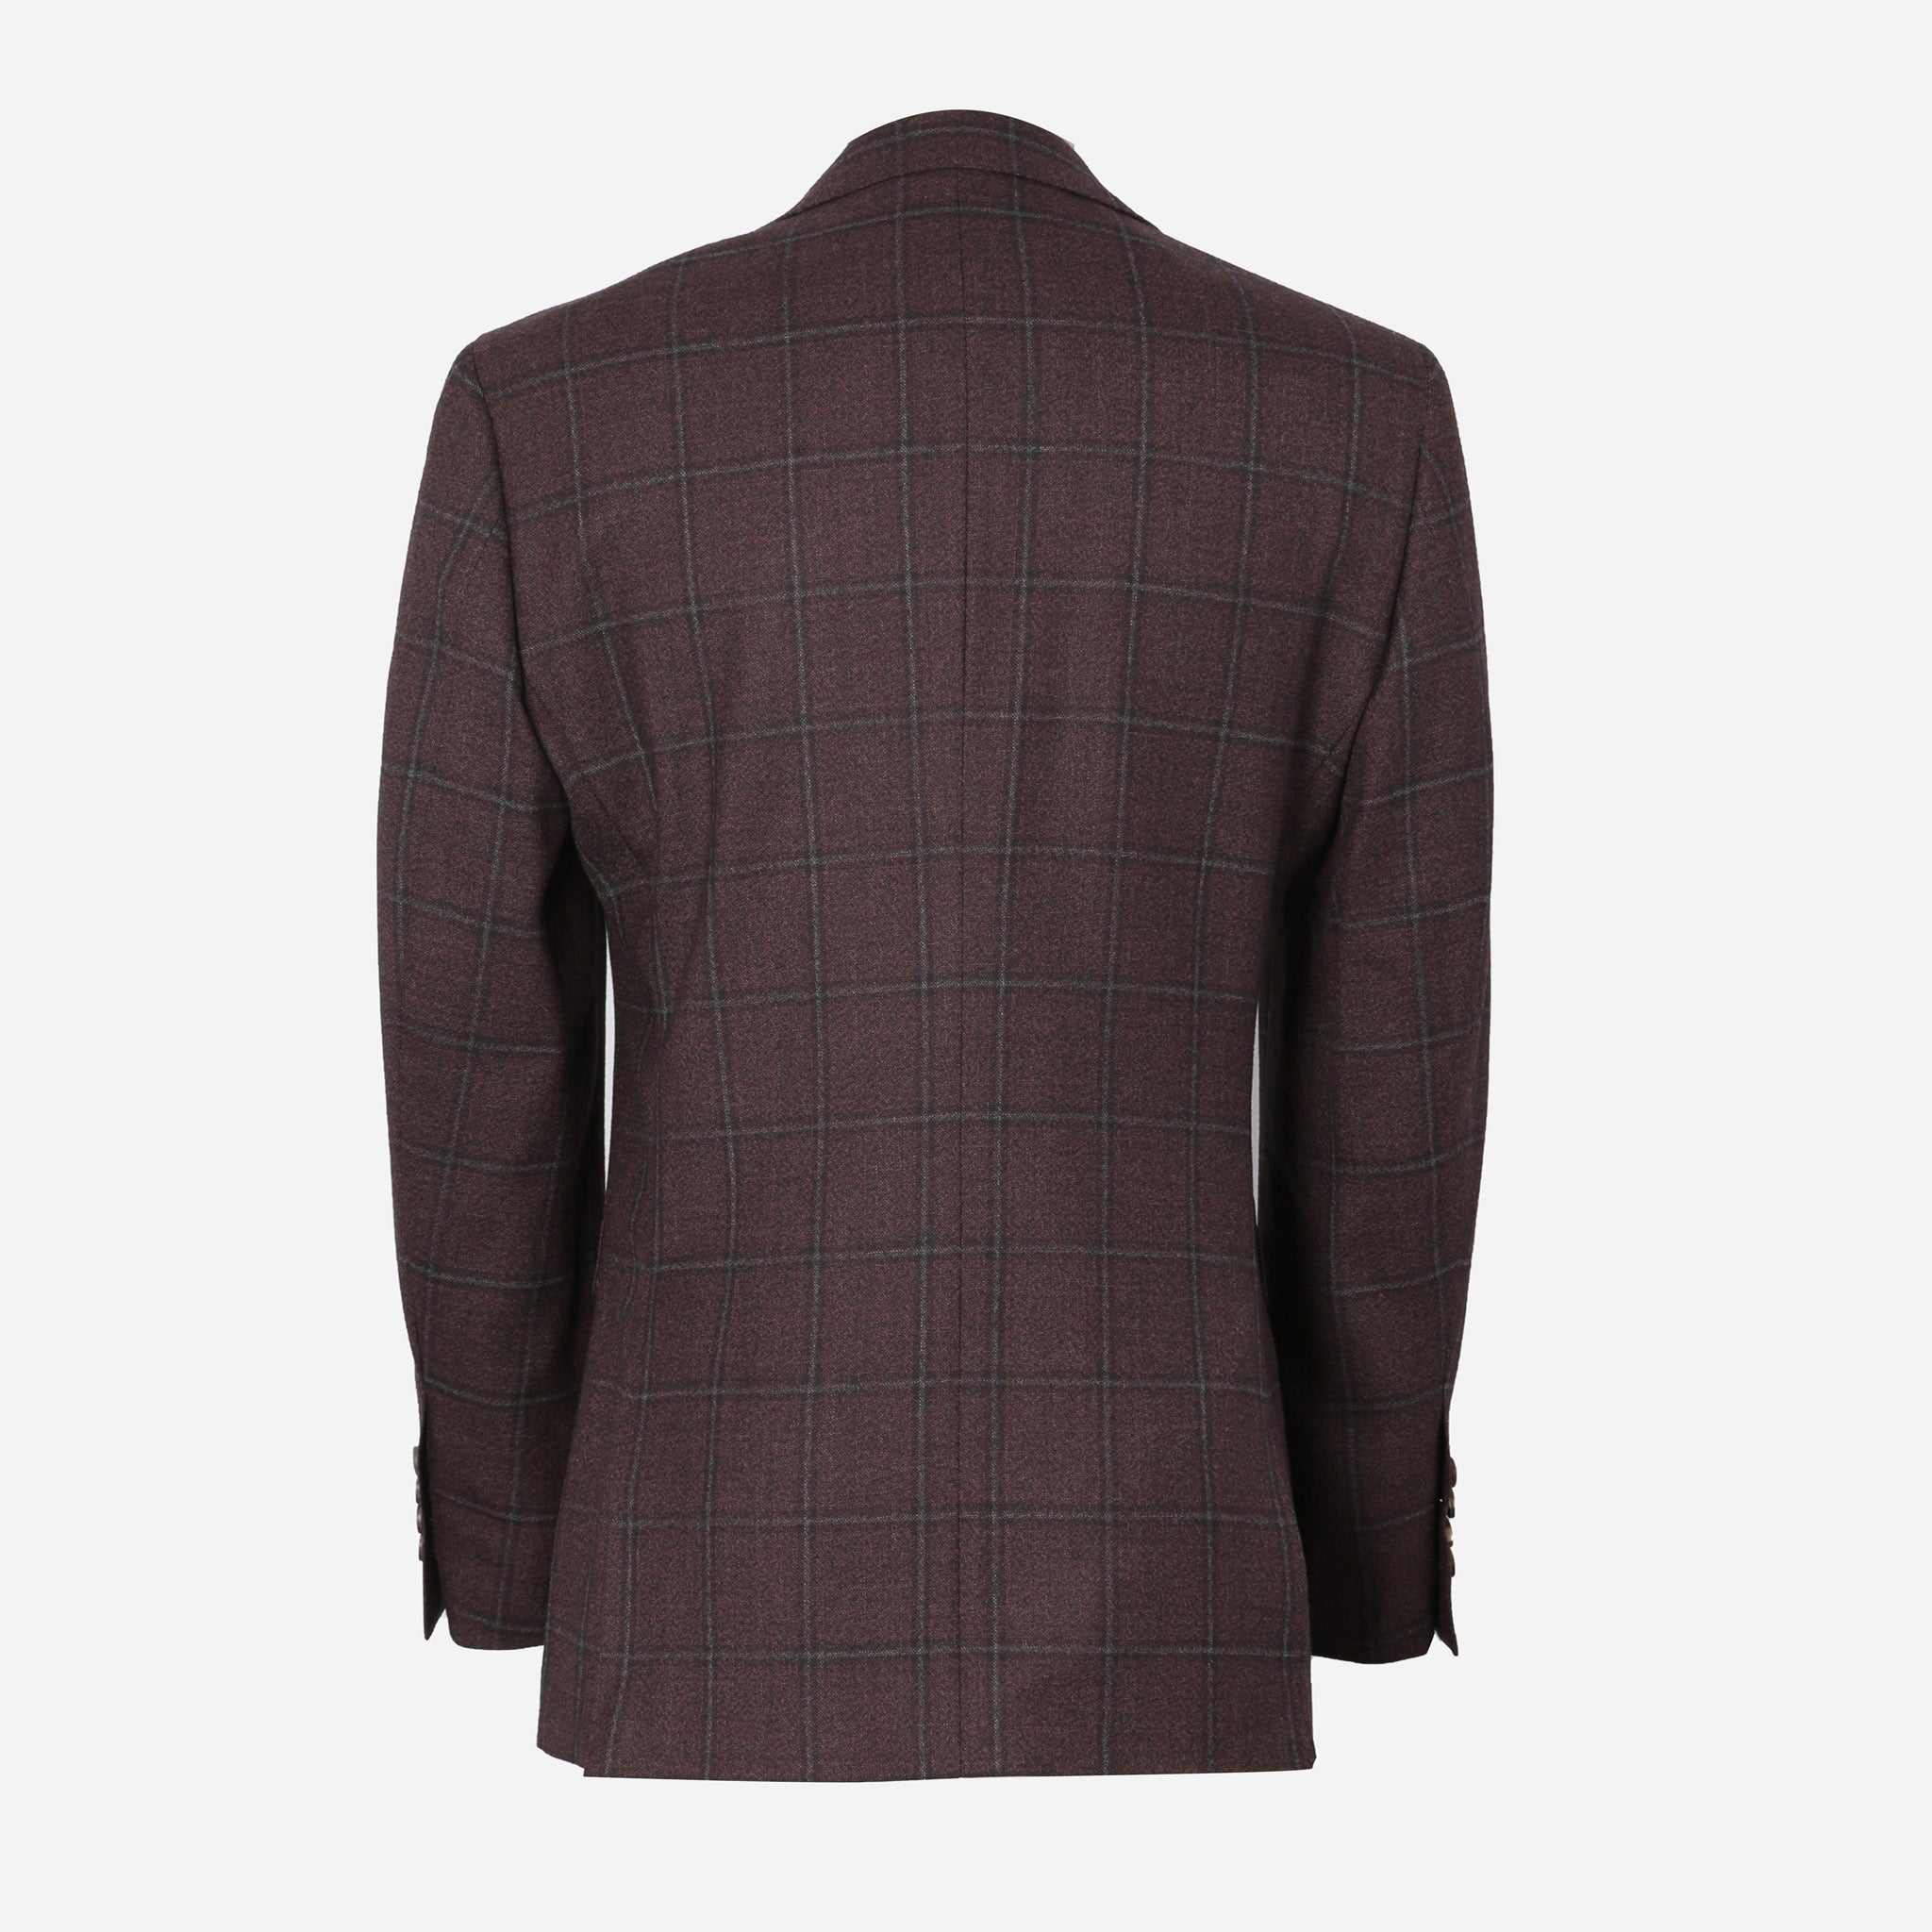 Secco Everyday Blazer in Purple Windowpane